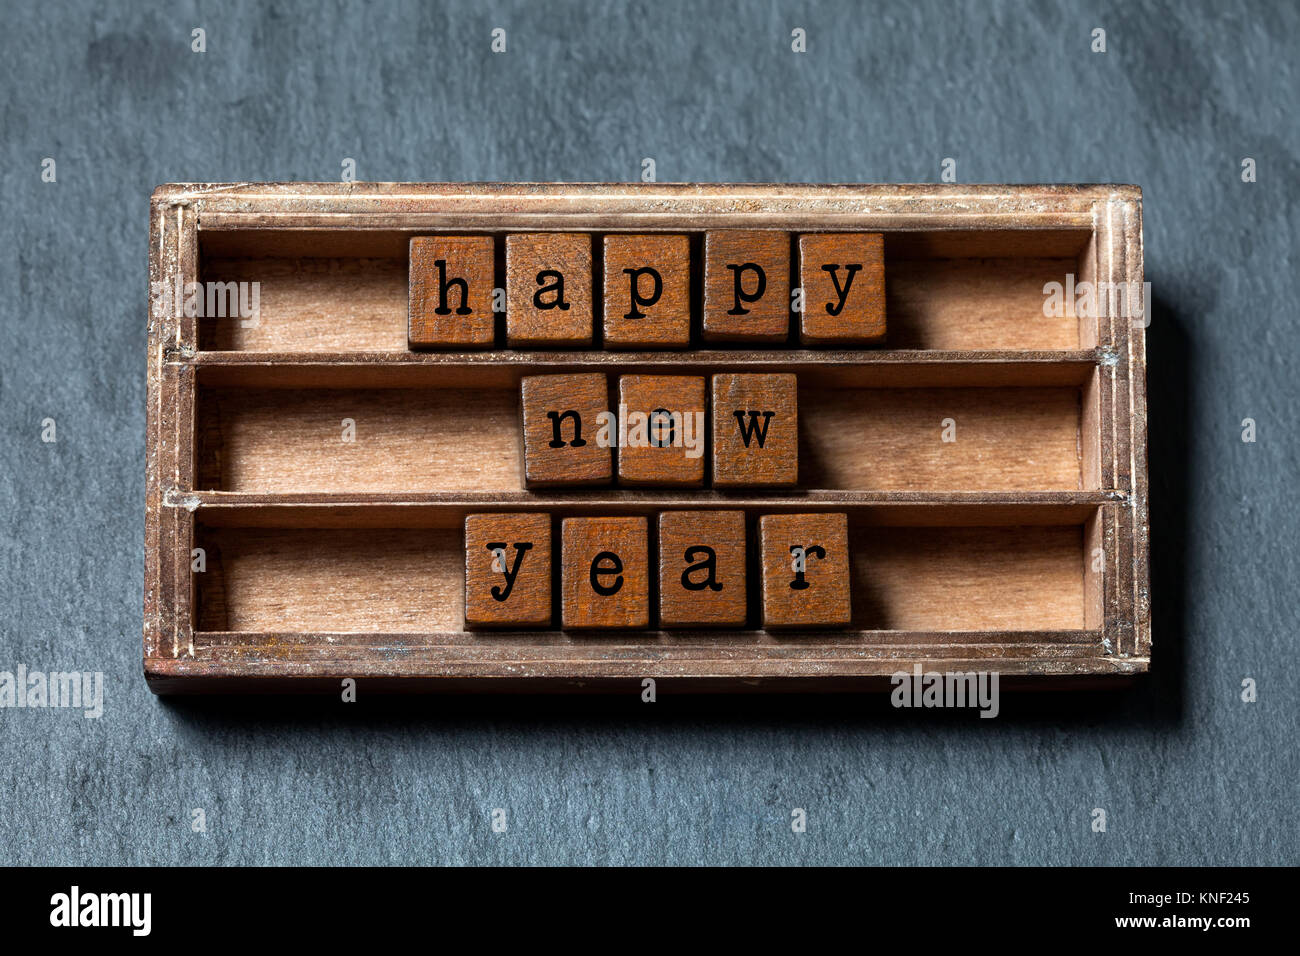 happy new year greeting card invitation poster vintage box wooden cubes with old style letters gray stone textured background close up soft focus